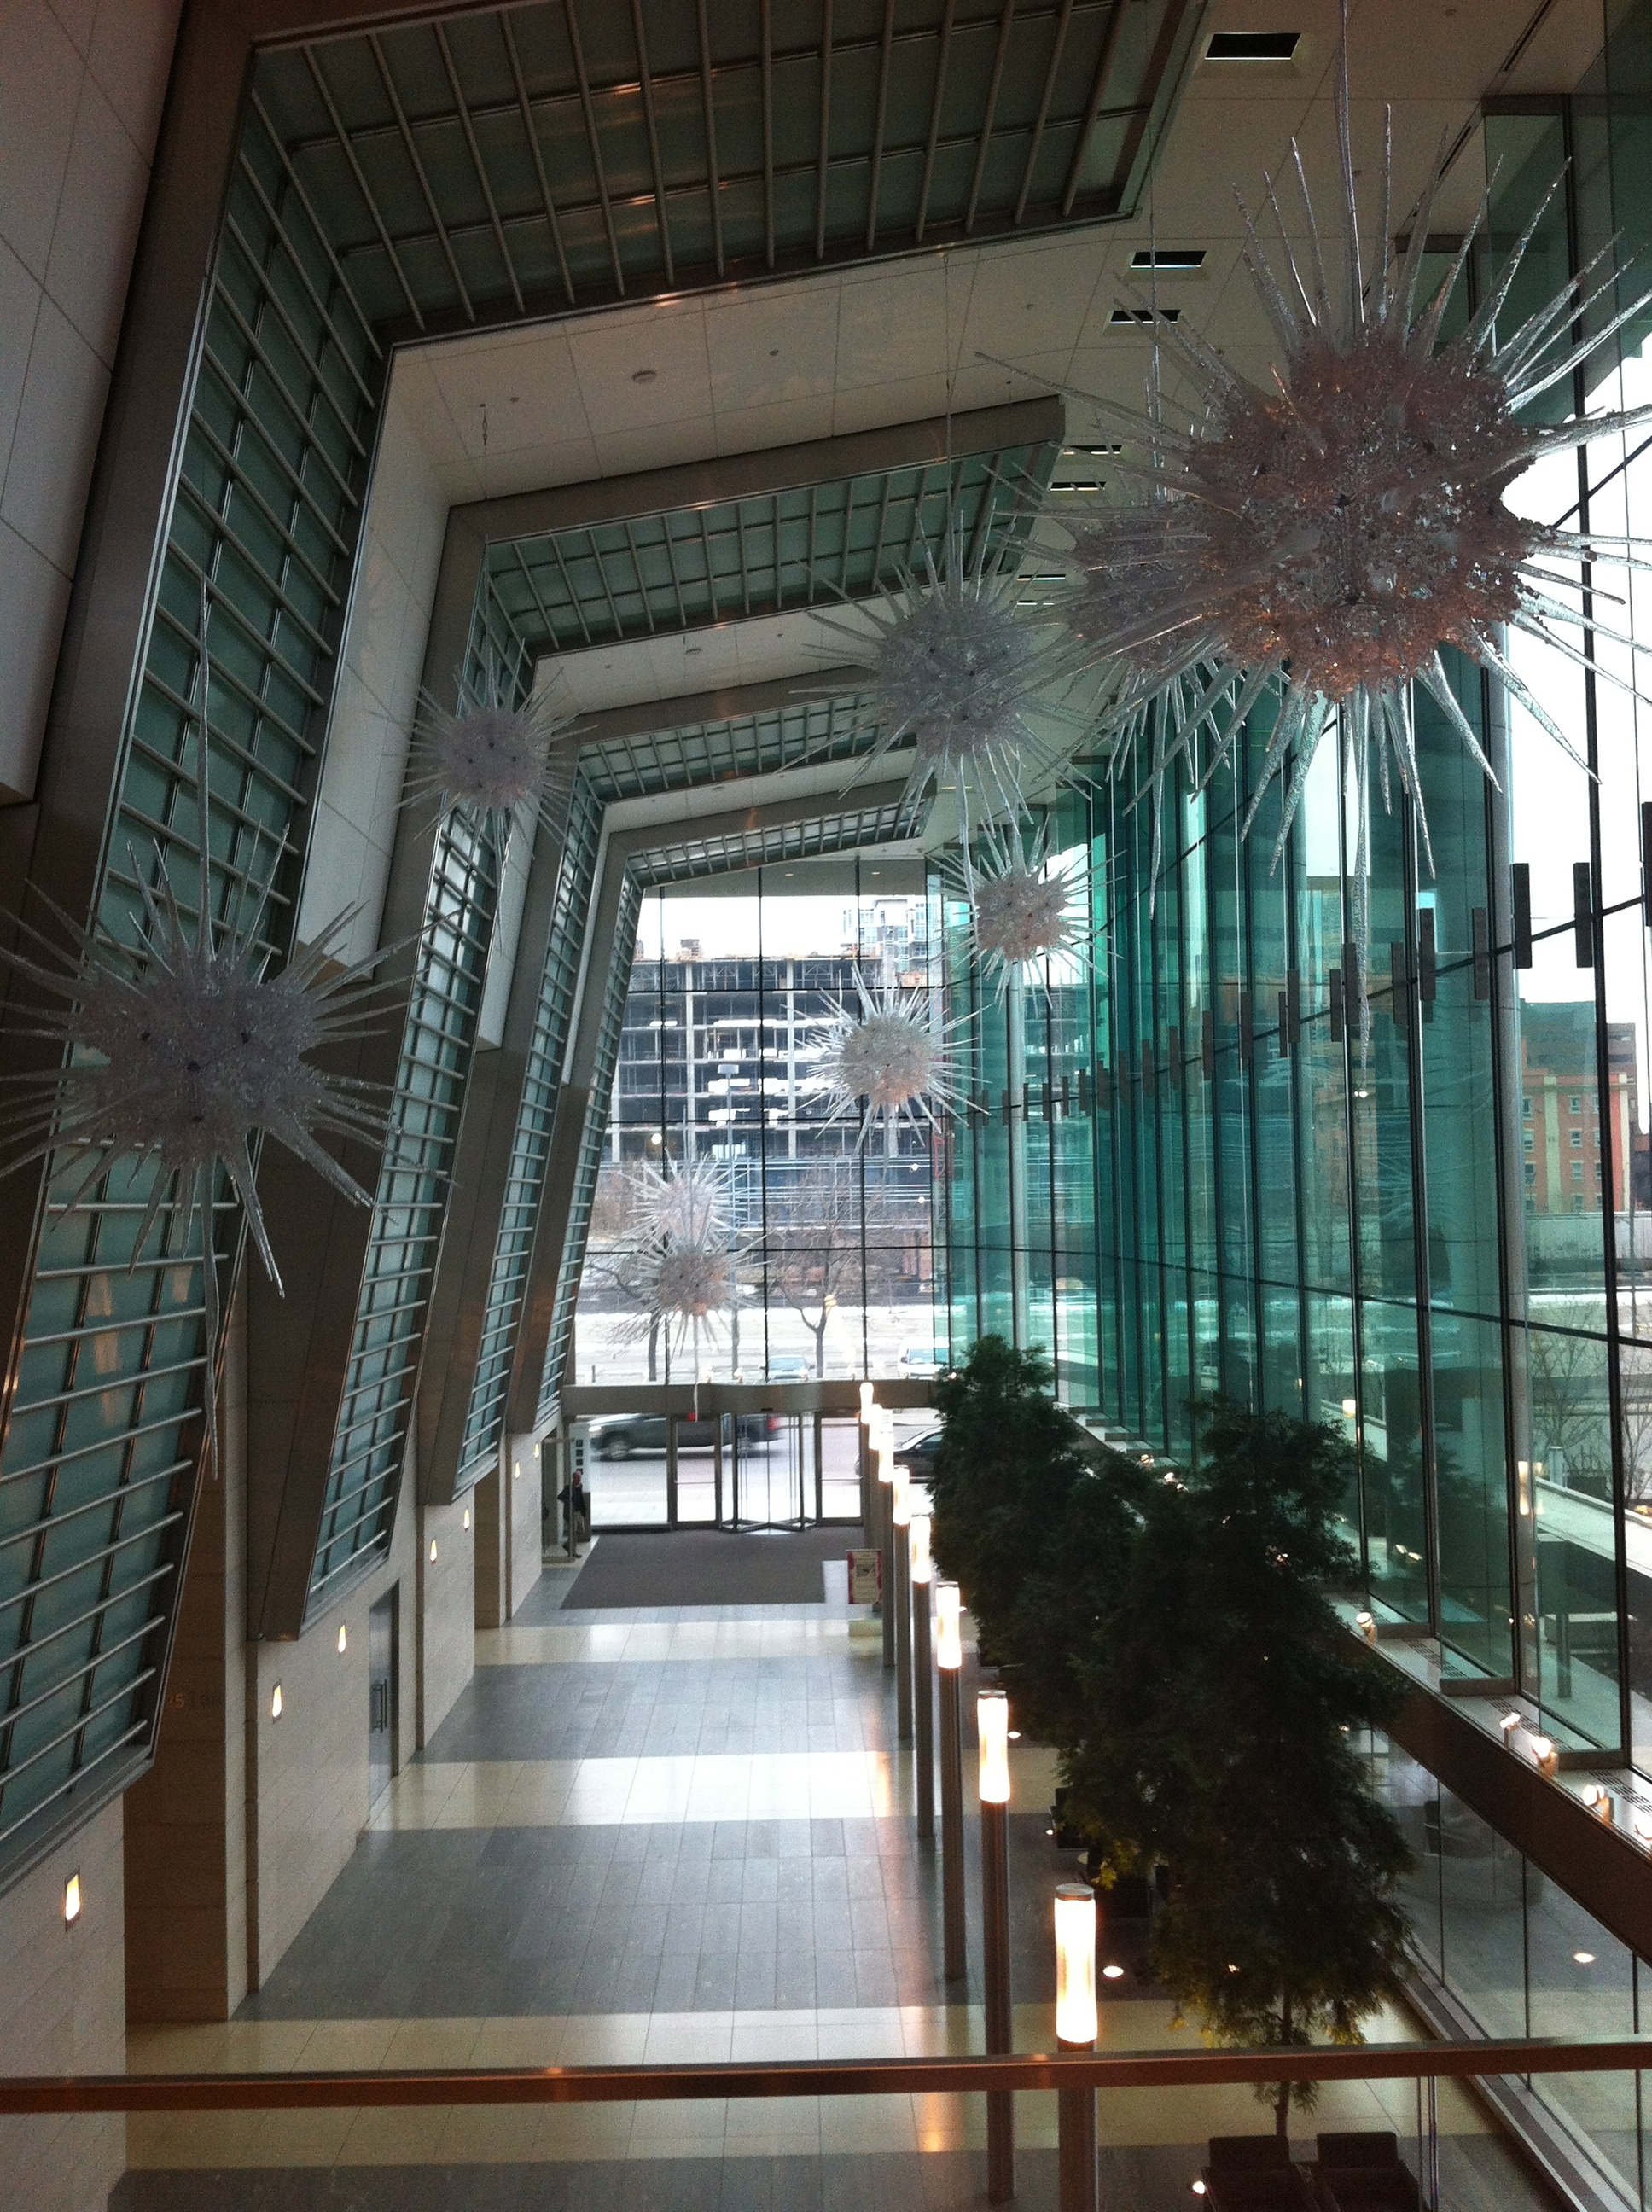 EAP's has one of the most dramatic office lobbies in Canada, perhaps North America.